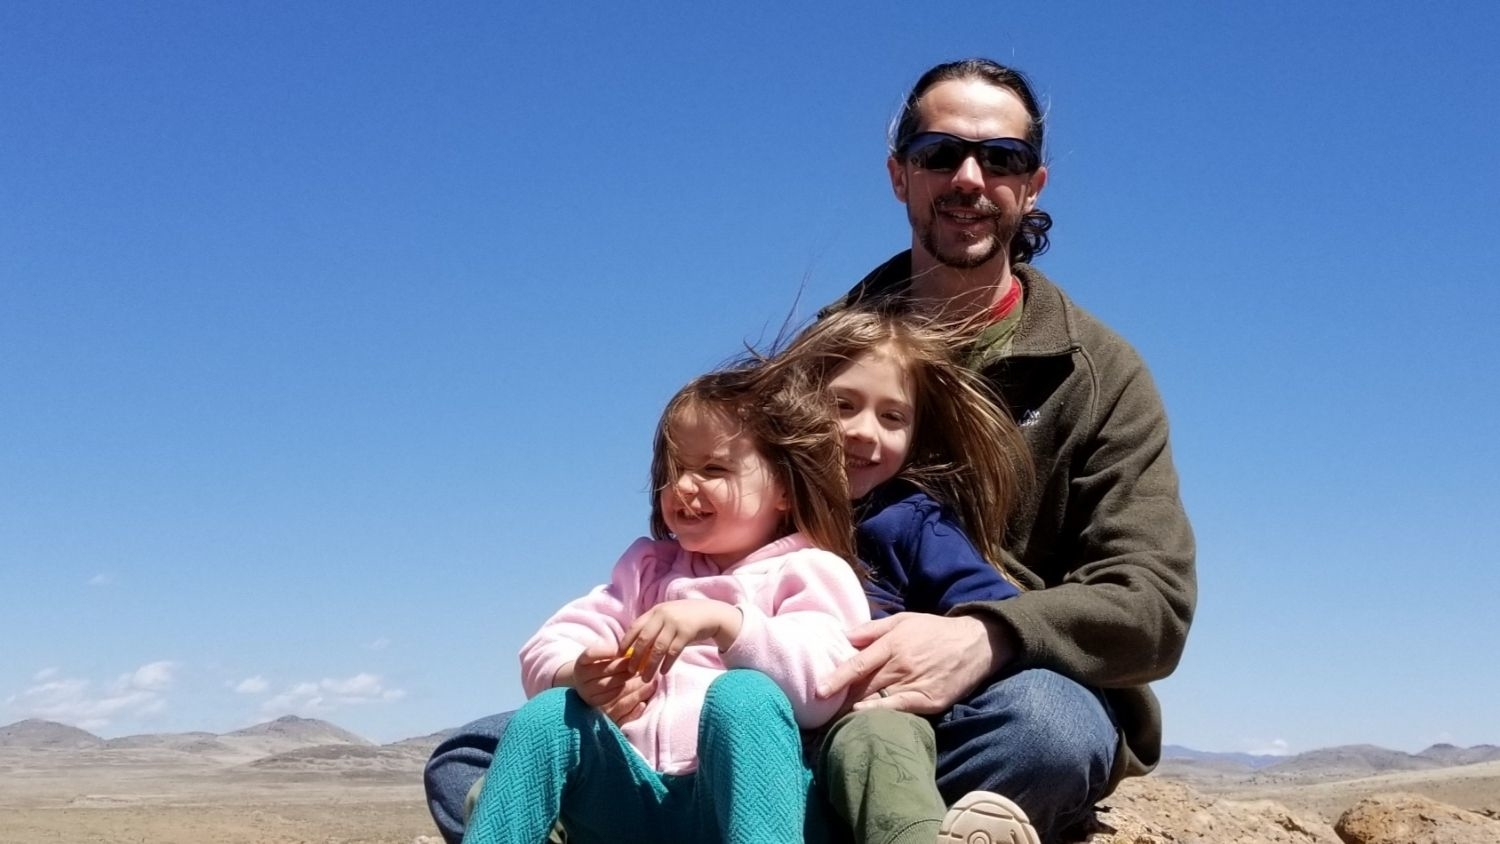 Family Photo - Five Questions with Regional Information Management Director Emrys Treasure, College of Natural Resources, Emrys Treasure, feature - Forestry and Environmental Resources Department at NCState